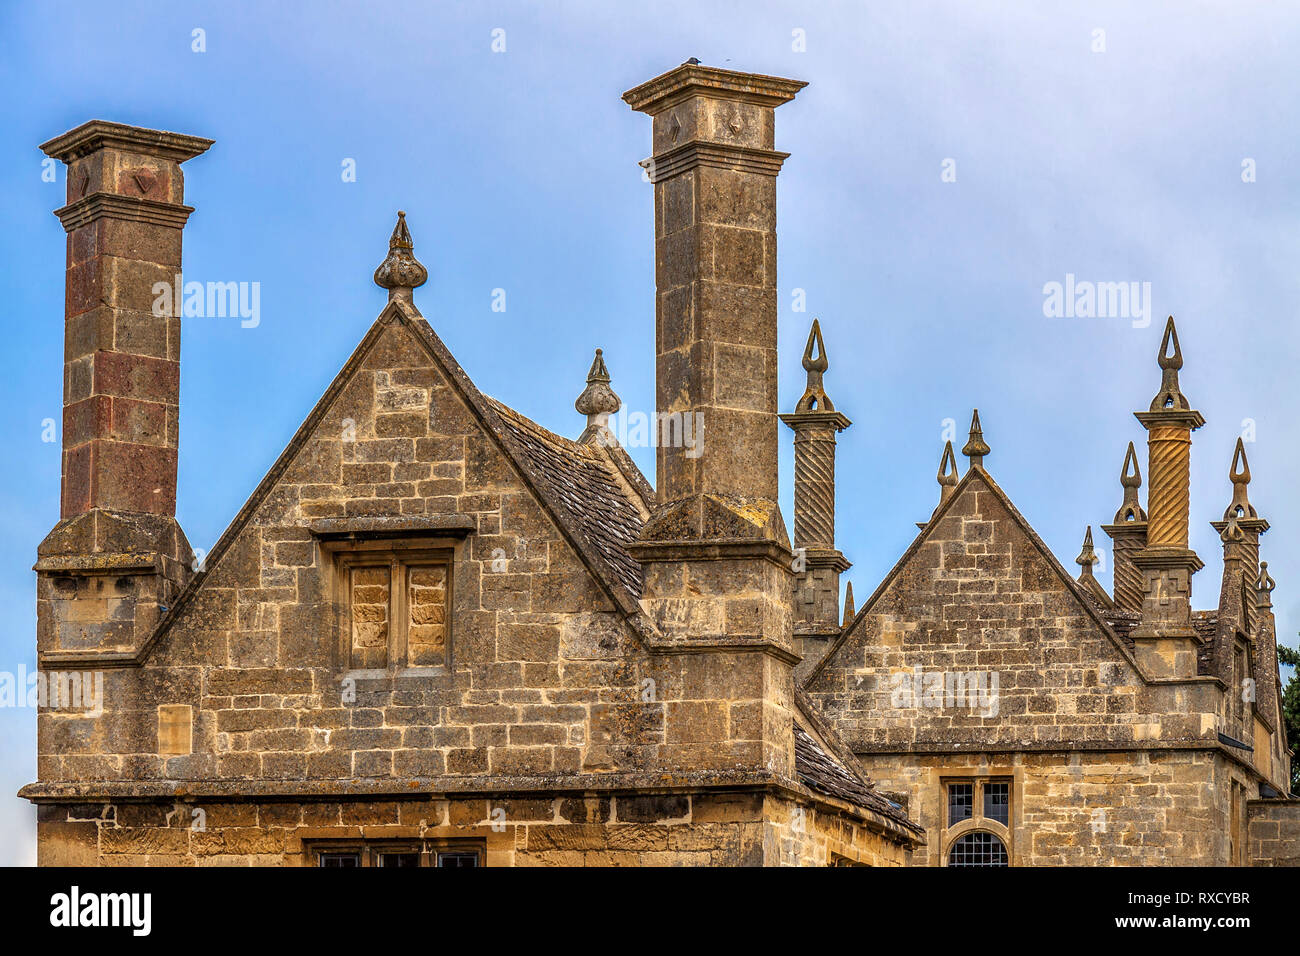 Chimneys In  Chipping Campden, Gloucestershire, England, UK Stock Photo